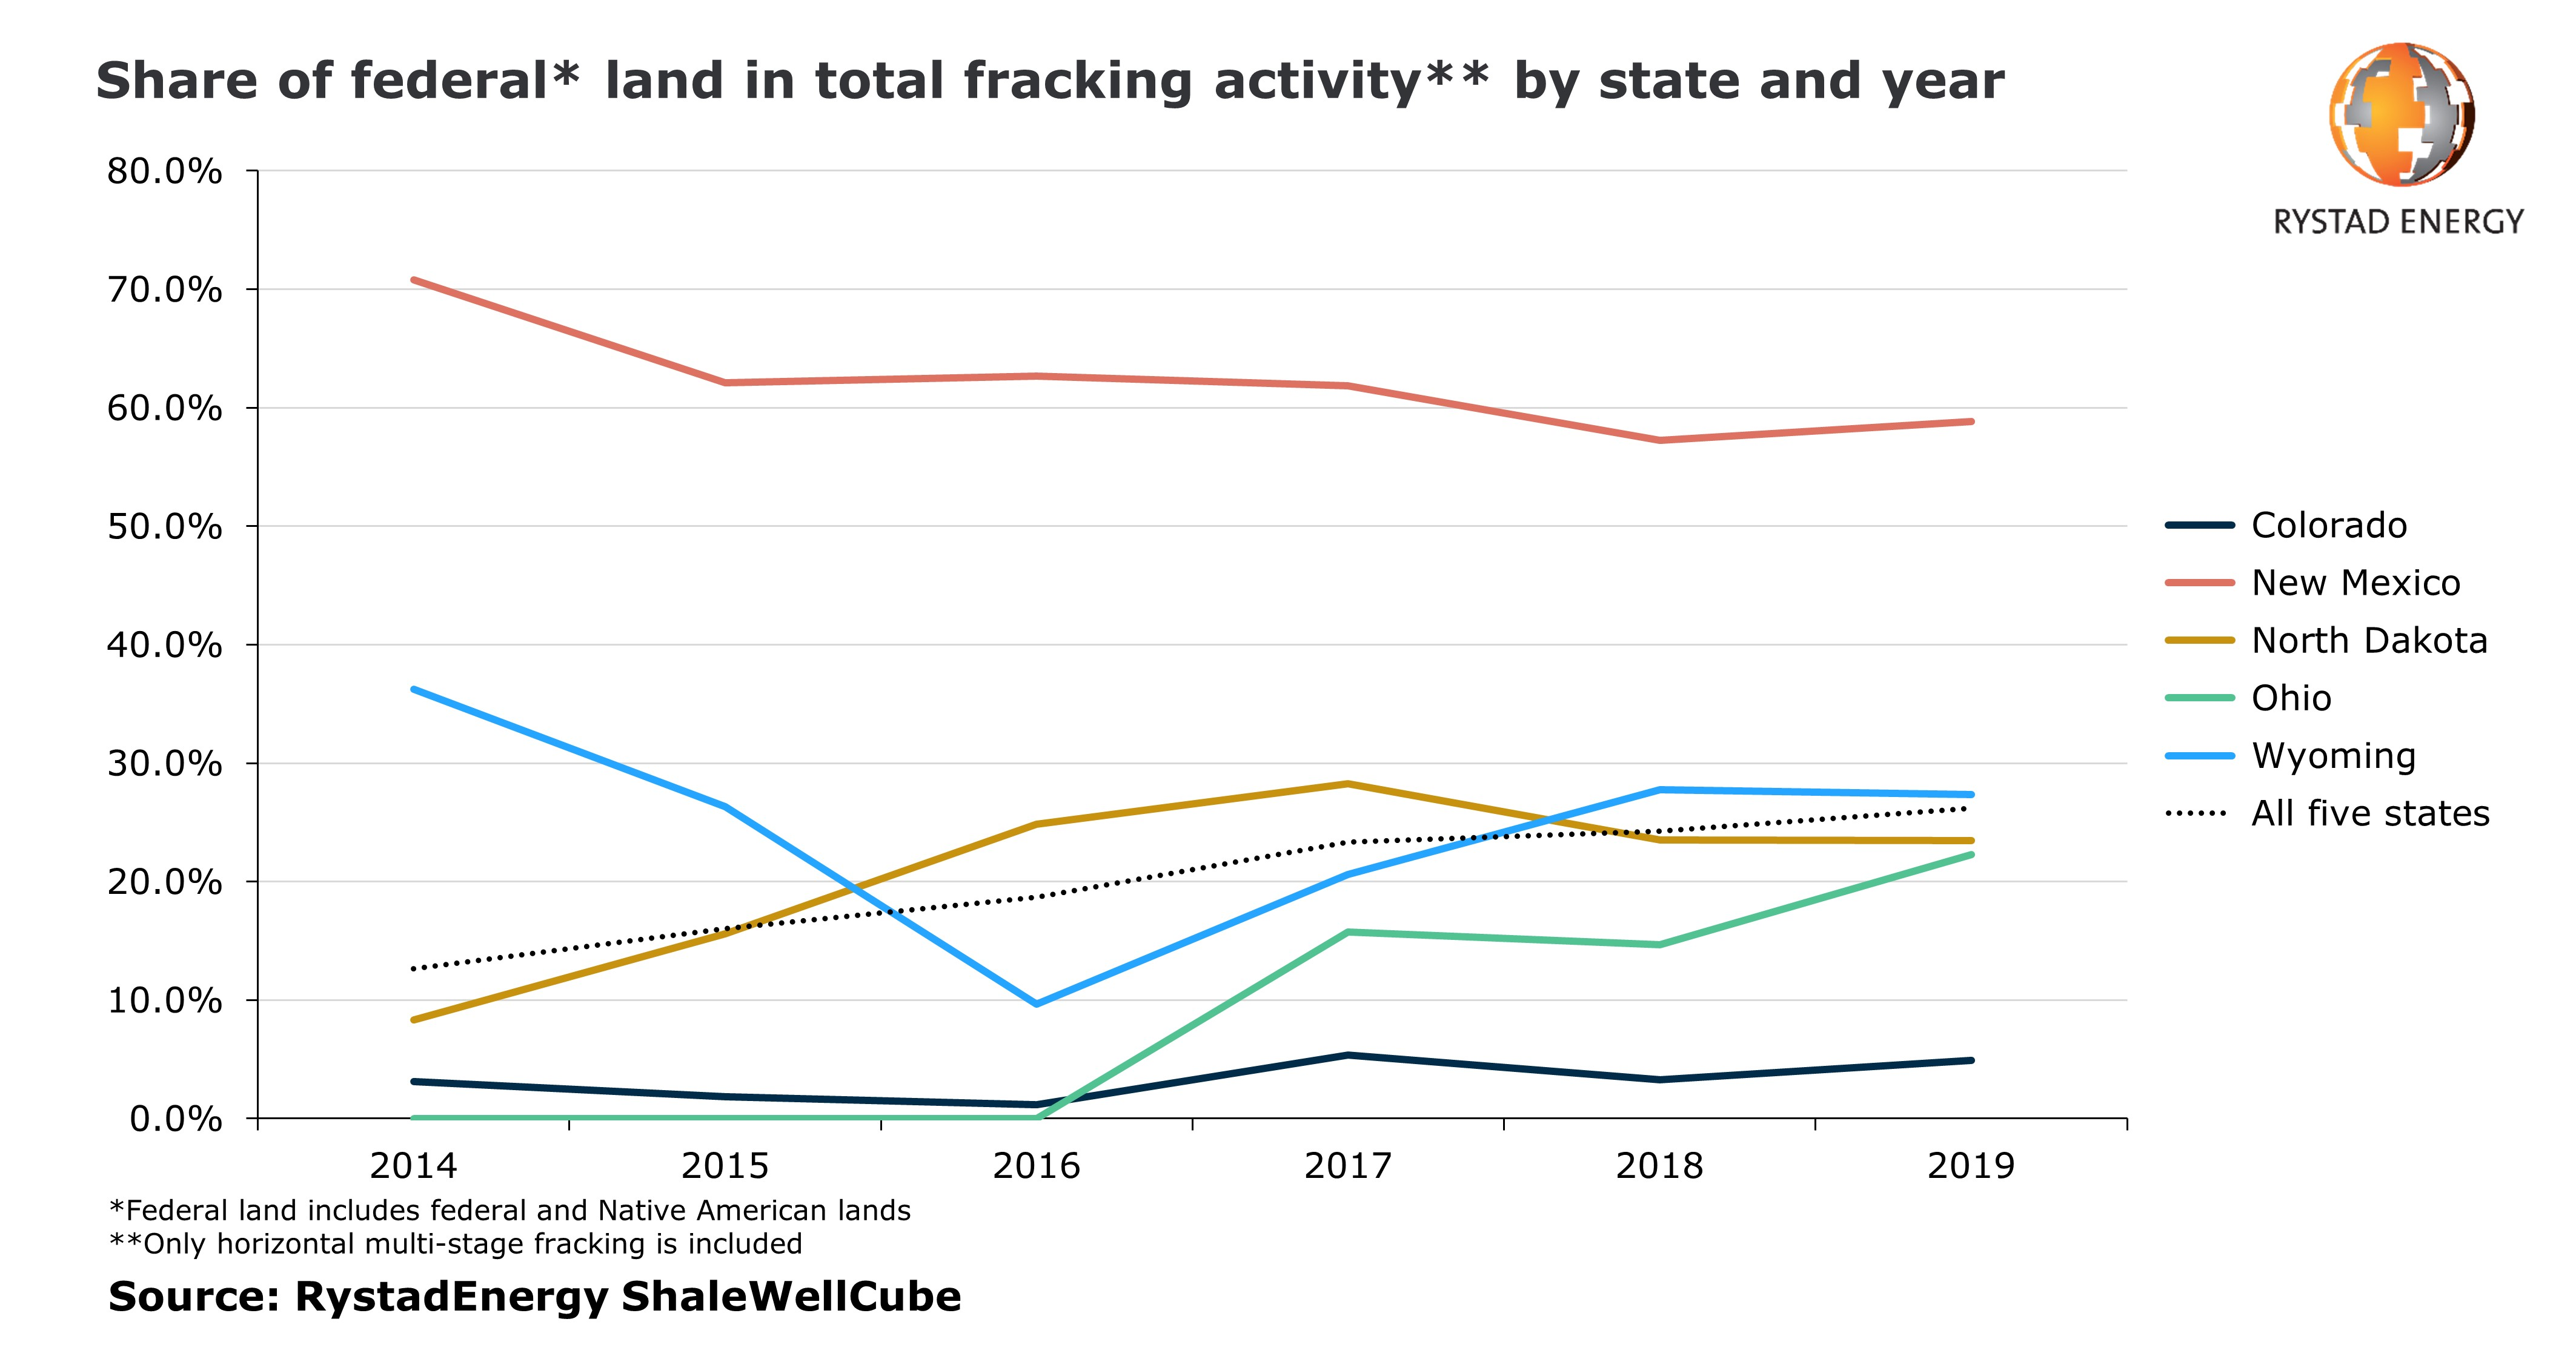 Share of federal land in total fracking activity by state and year from 2014 to 2019